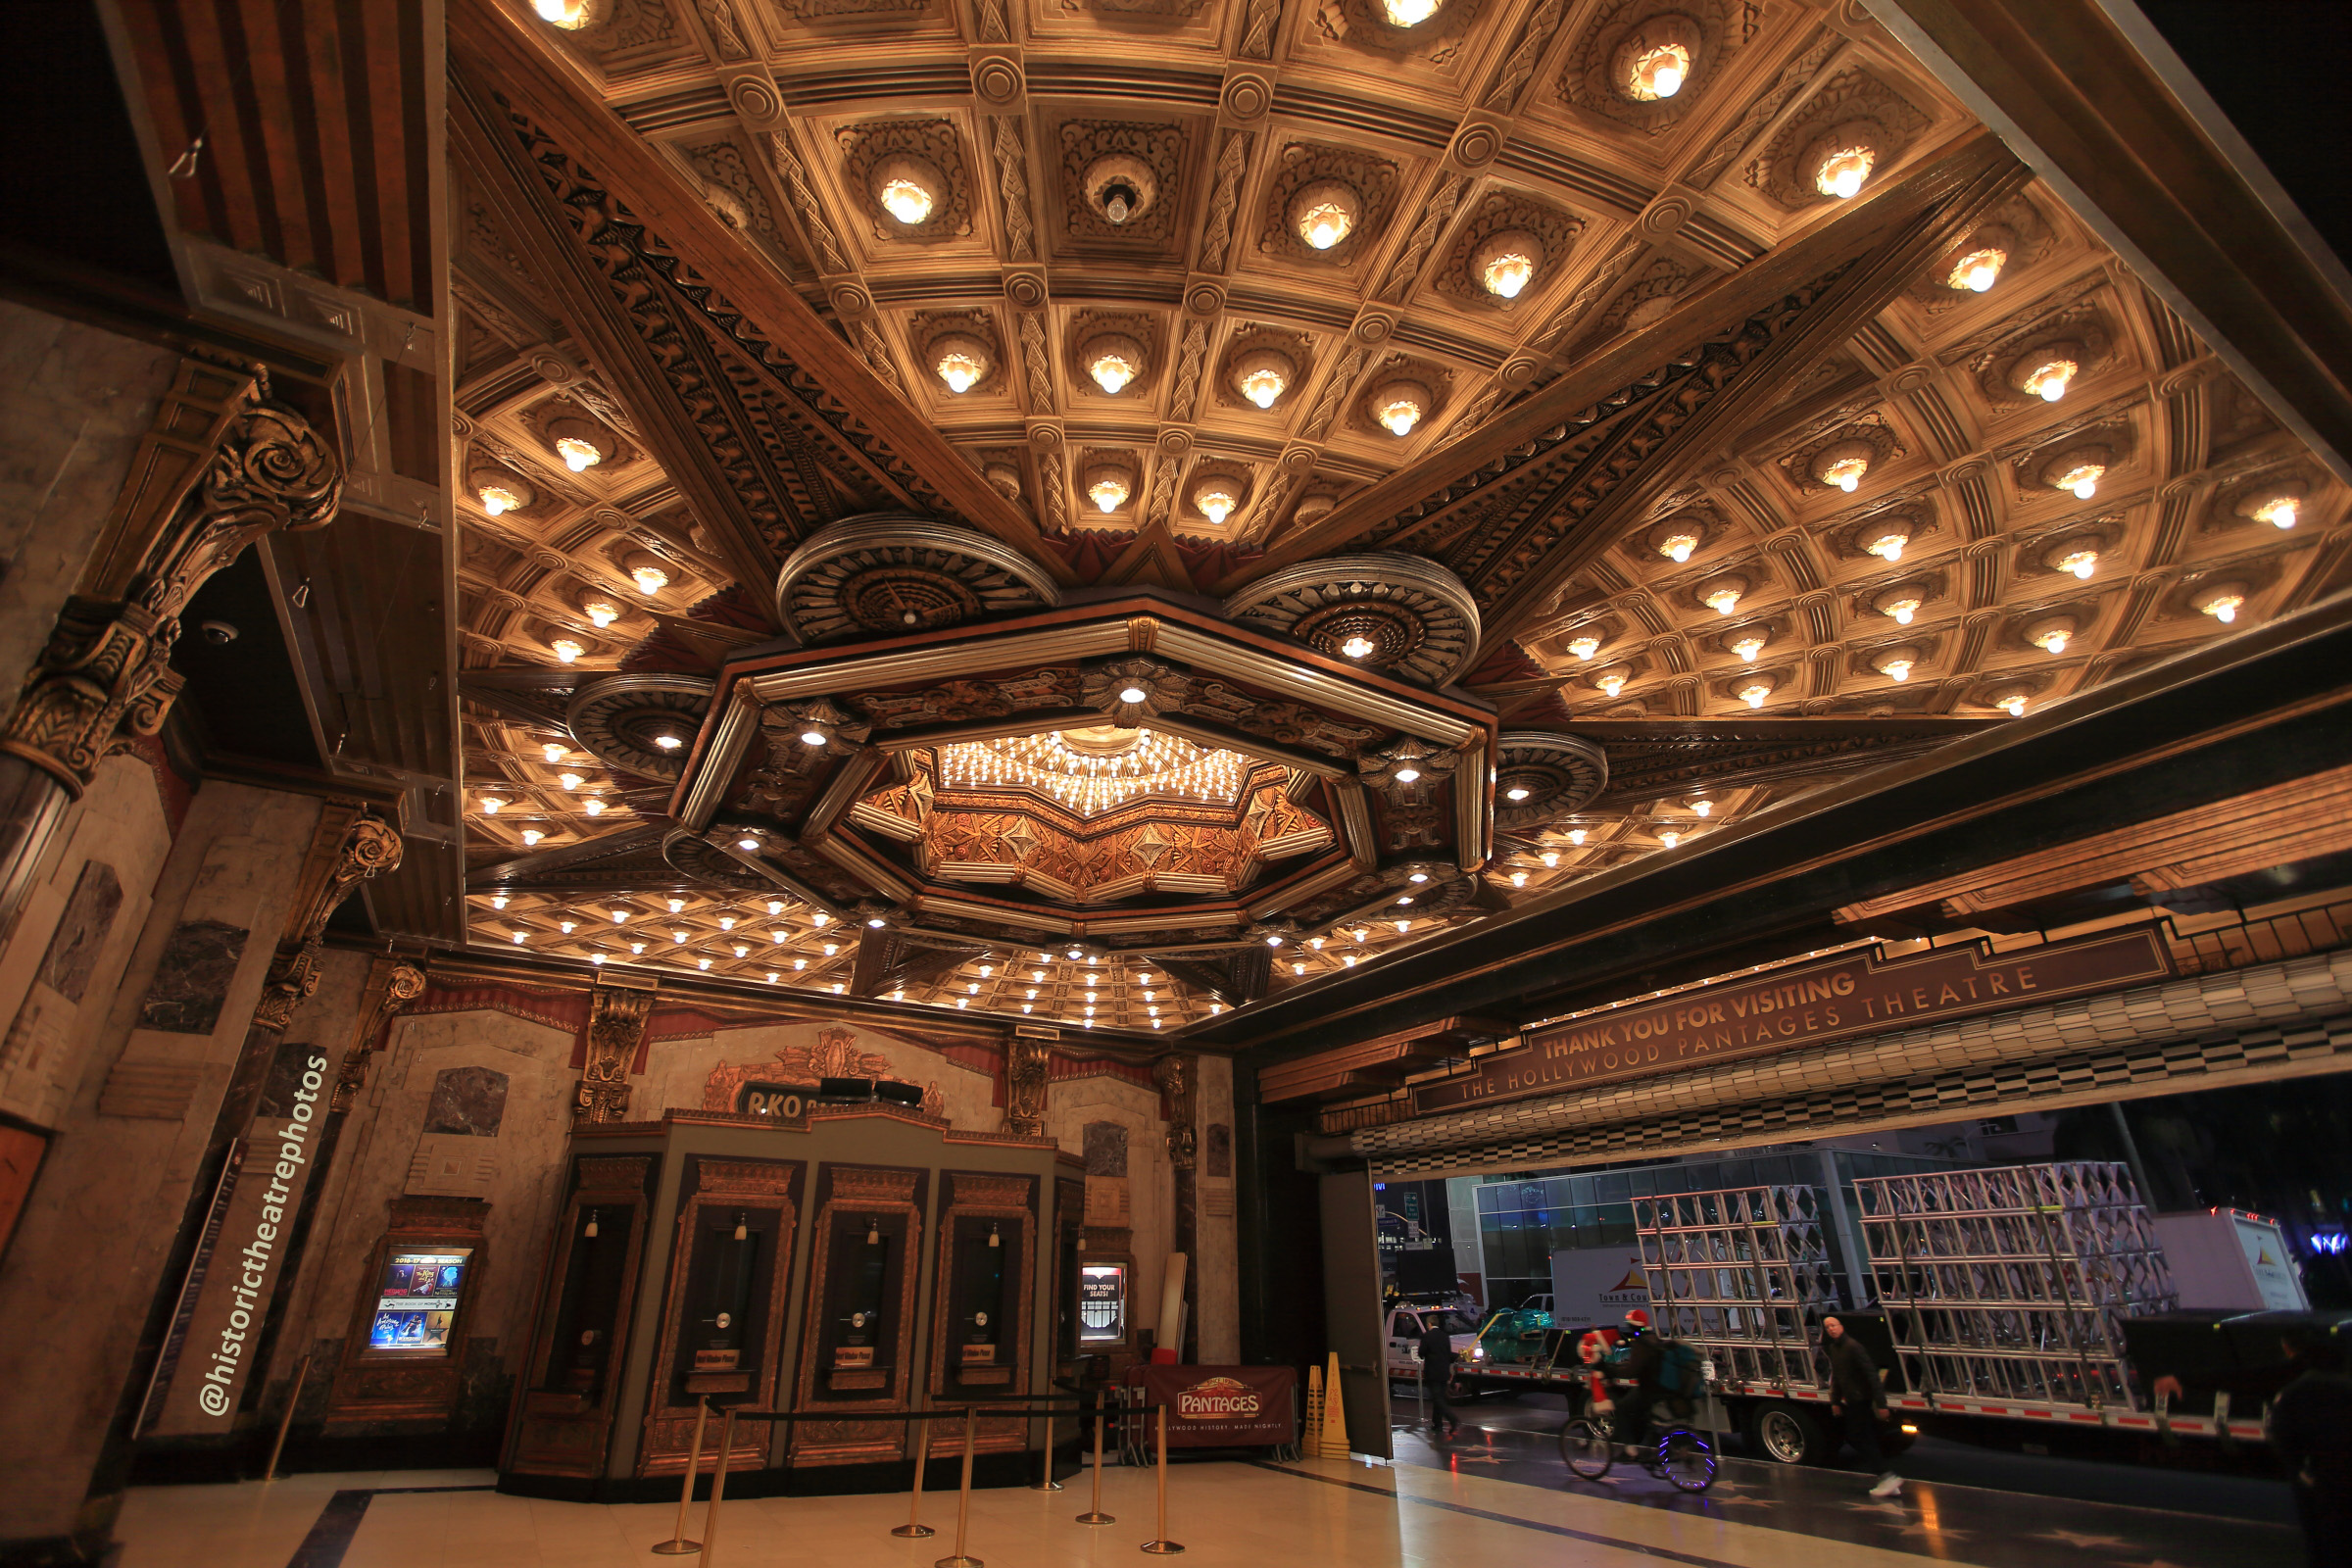 Pantages Theatre, Hollywood: Exterior/Ticket Lobby with Box Office on right